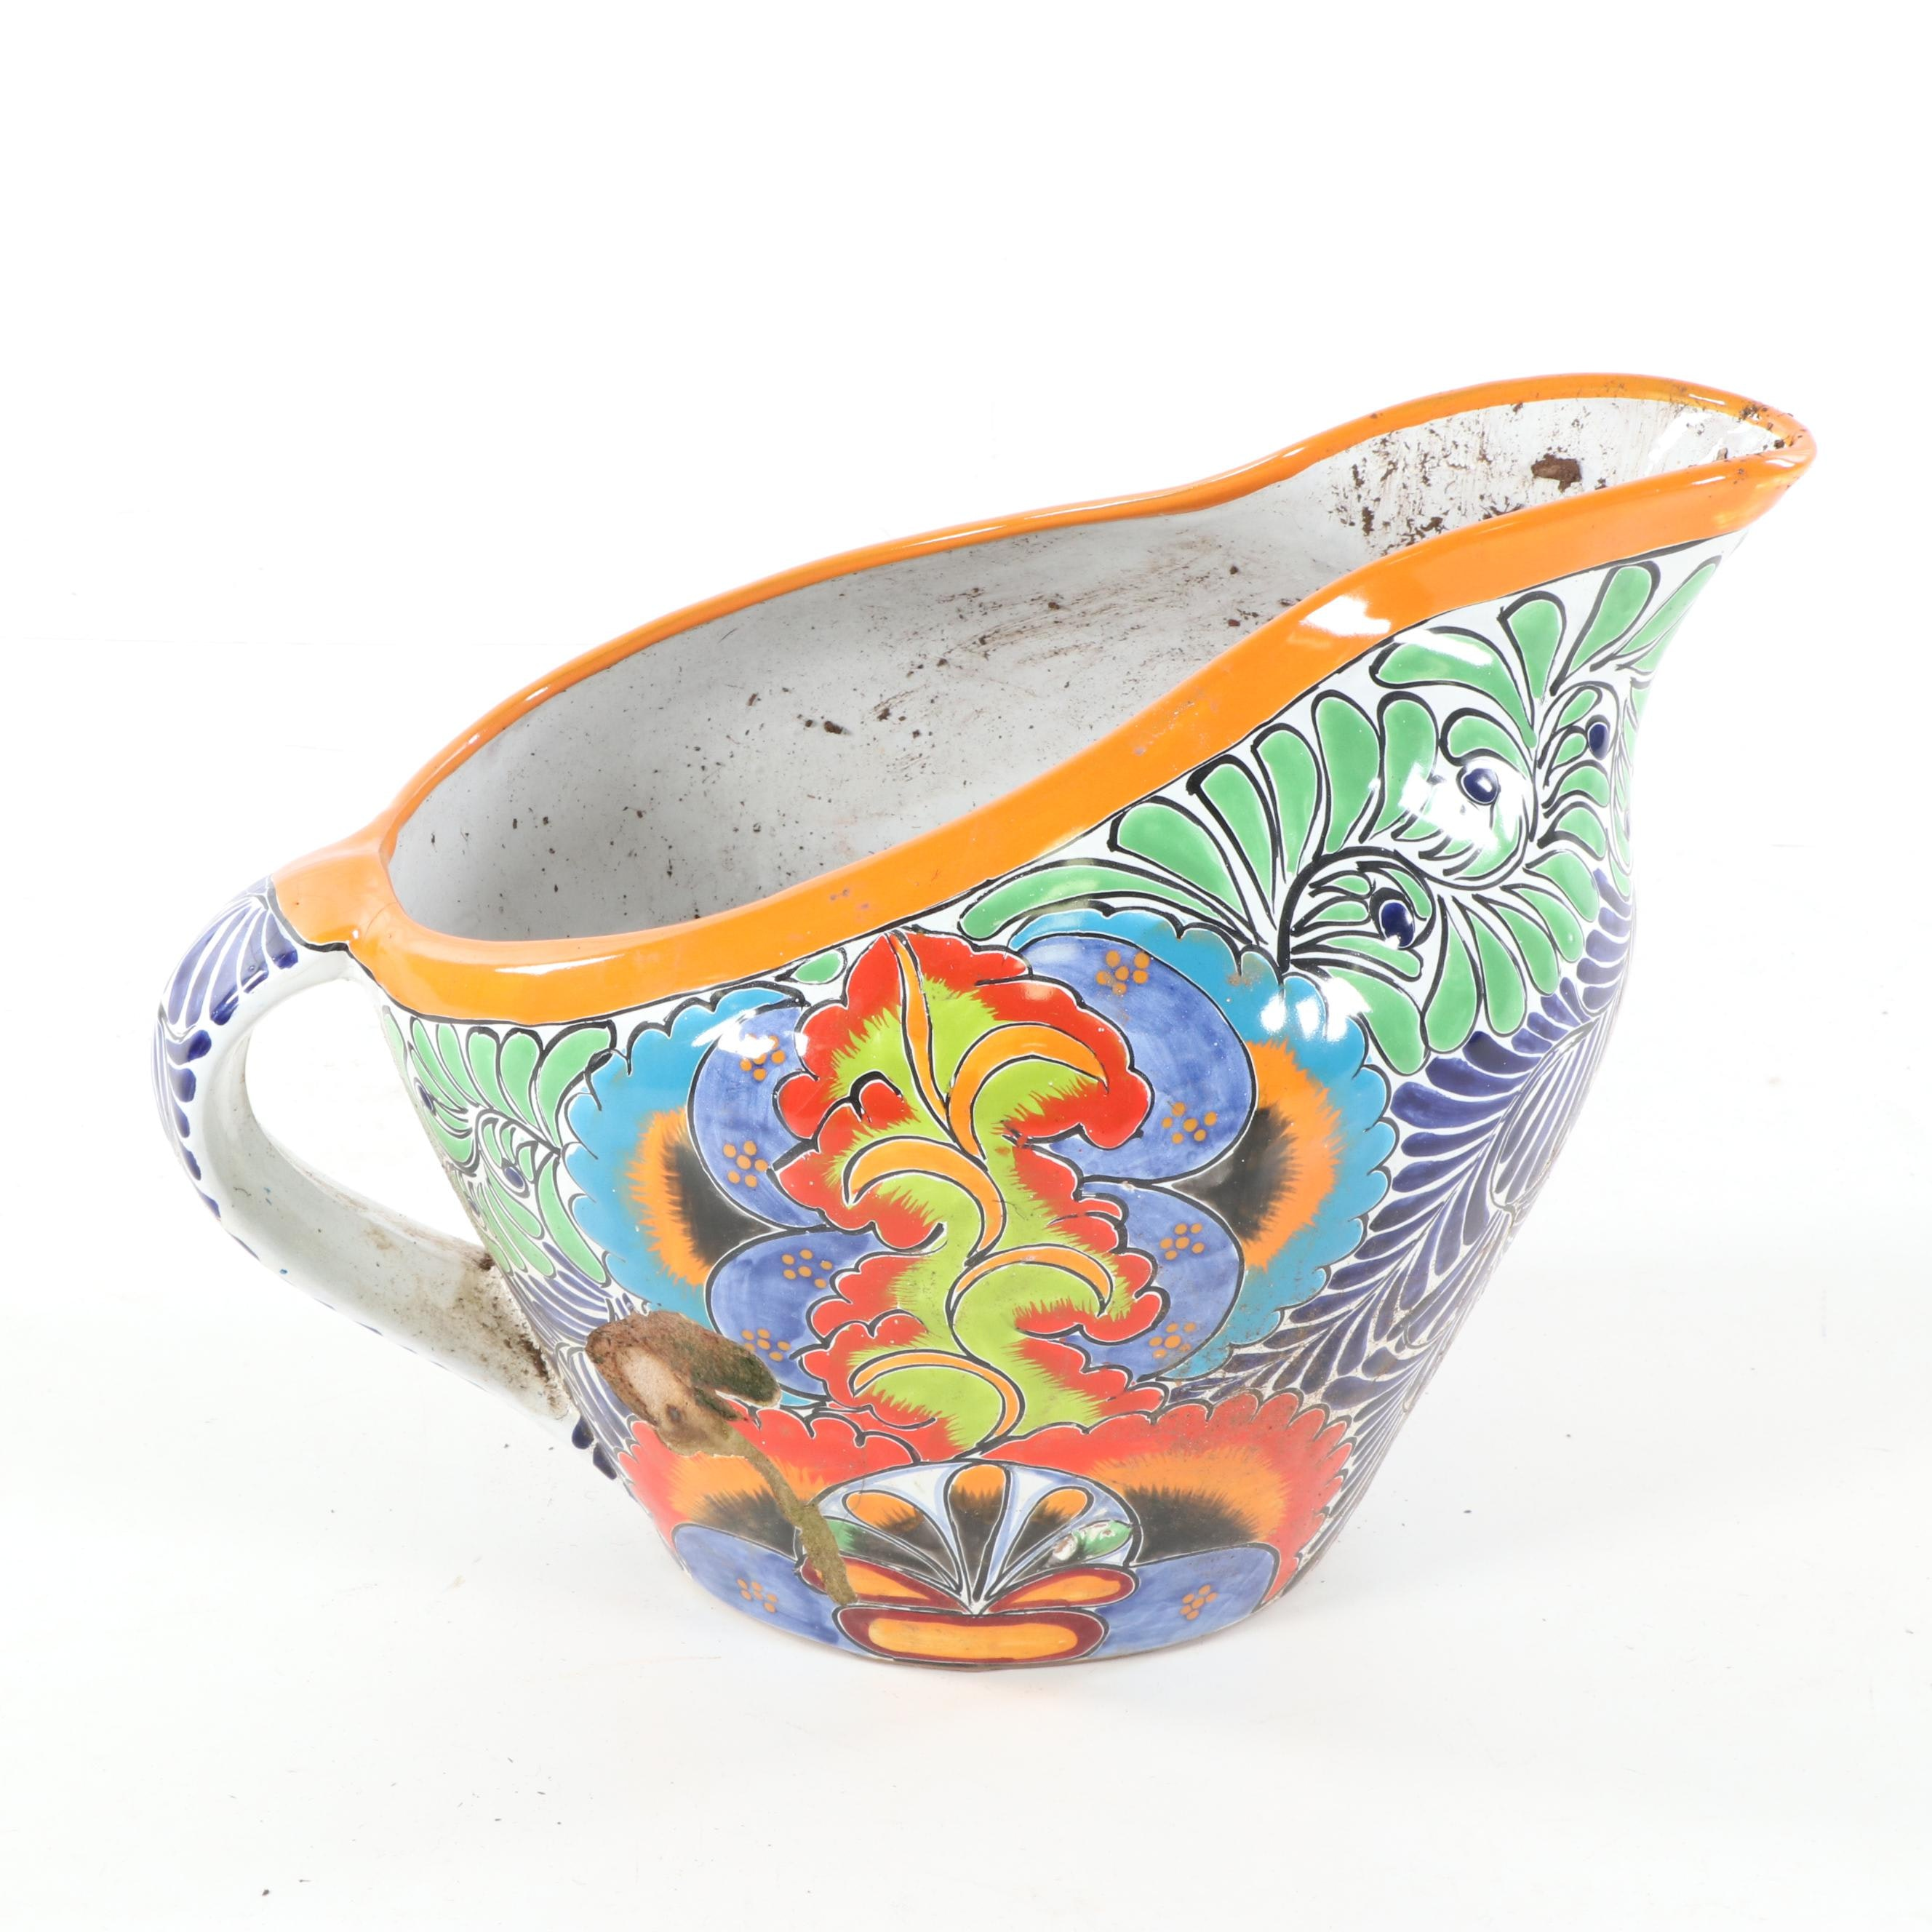 Hand-Painted Mexican Talaveras Earthenware Planter